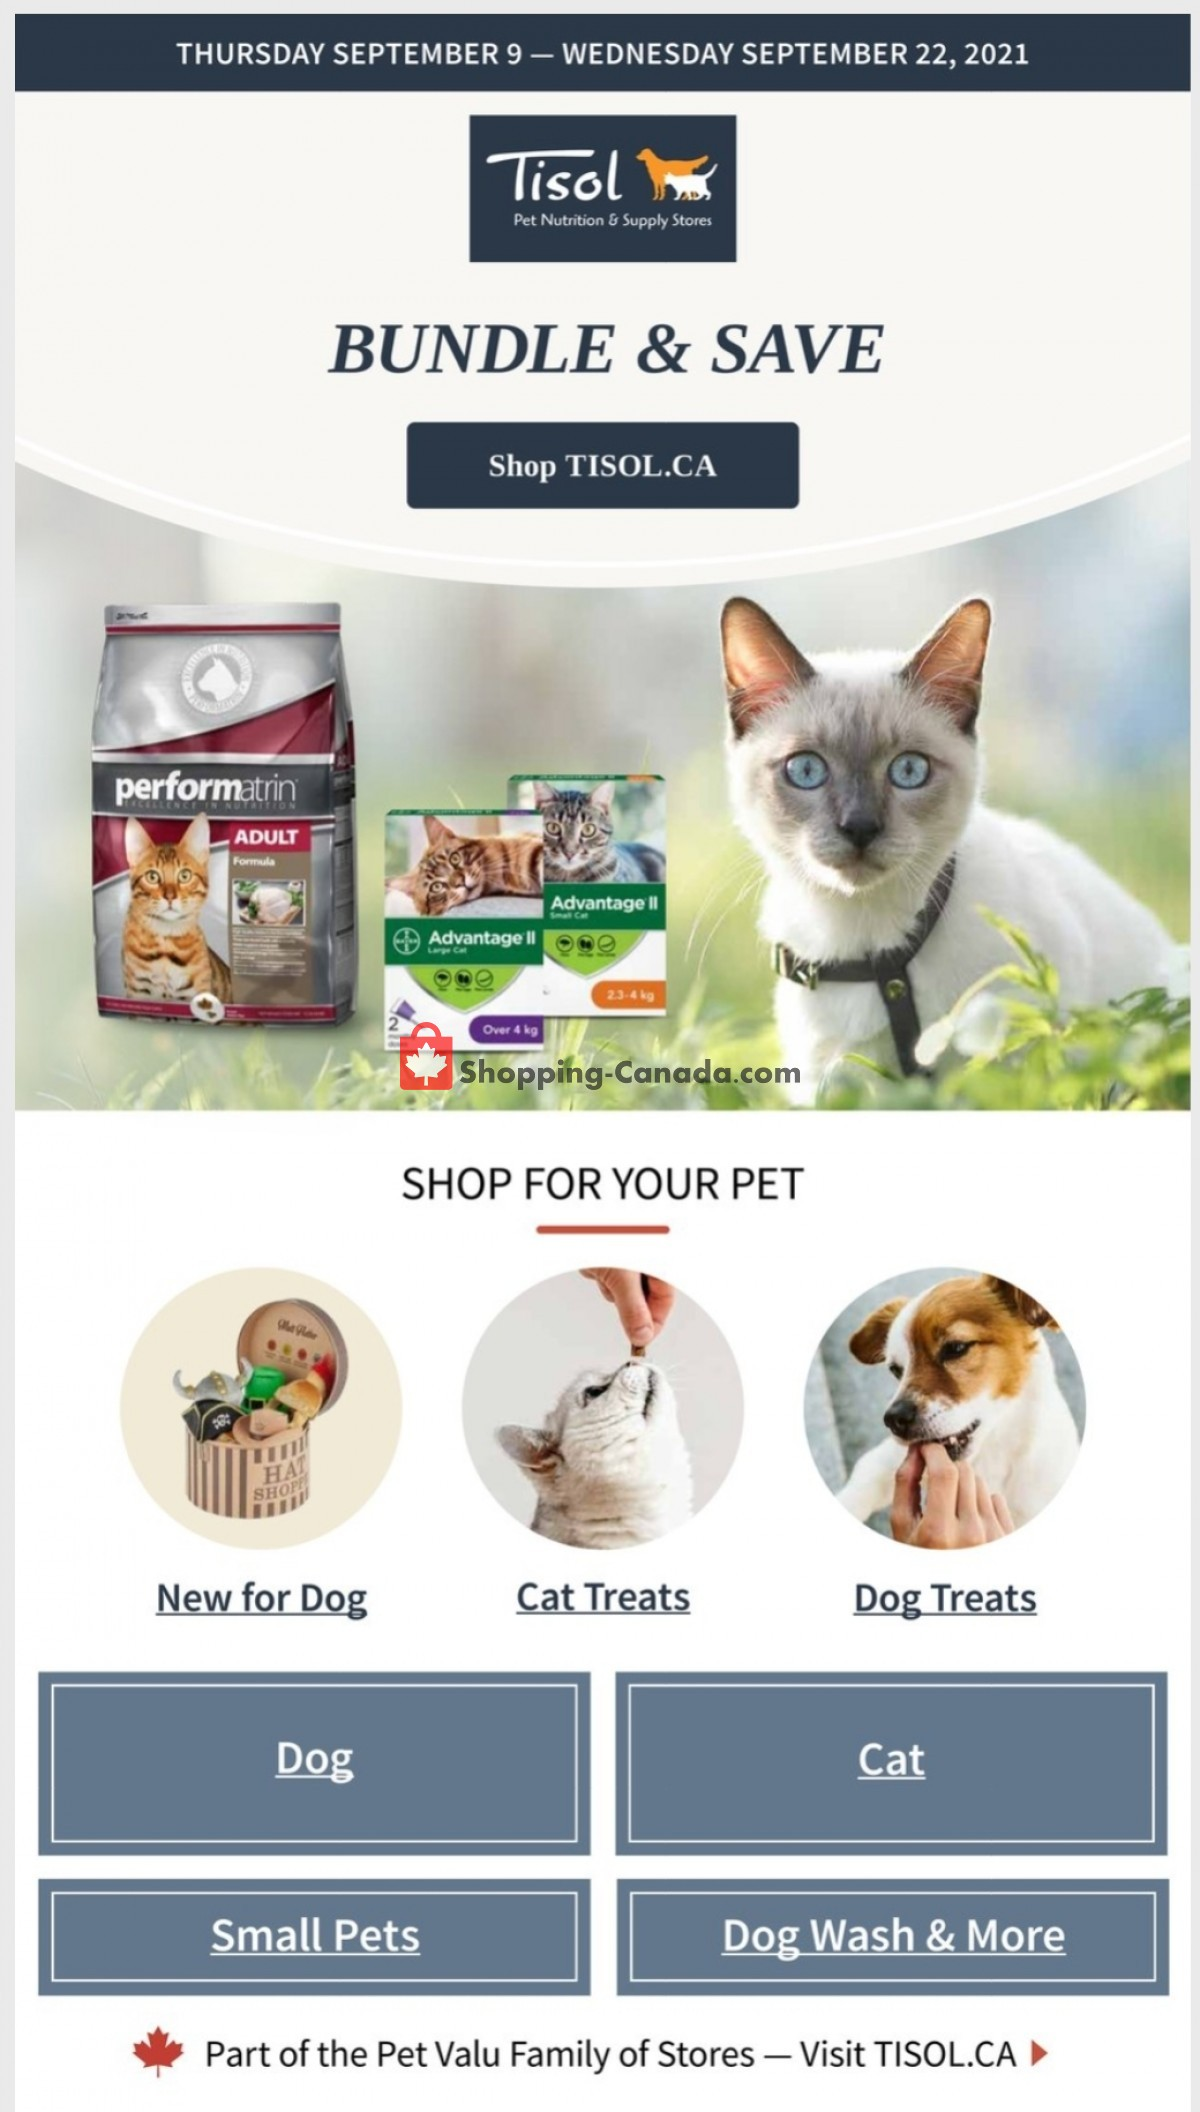 Flyer Tisol Pet Nutrition And Supply Stores Canada - from Thursday September 9, 2021 to Wednesday September 22, 2021